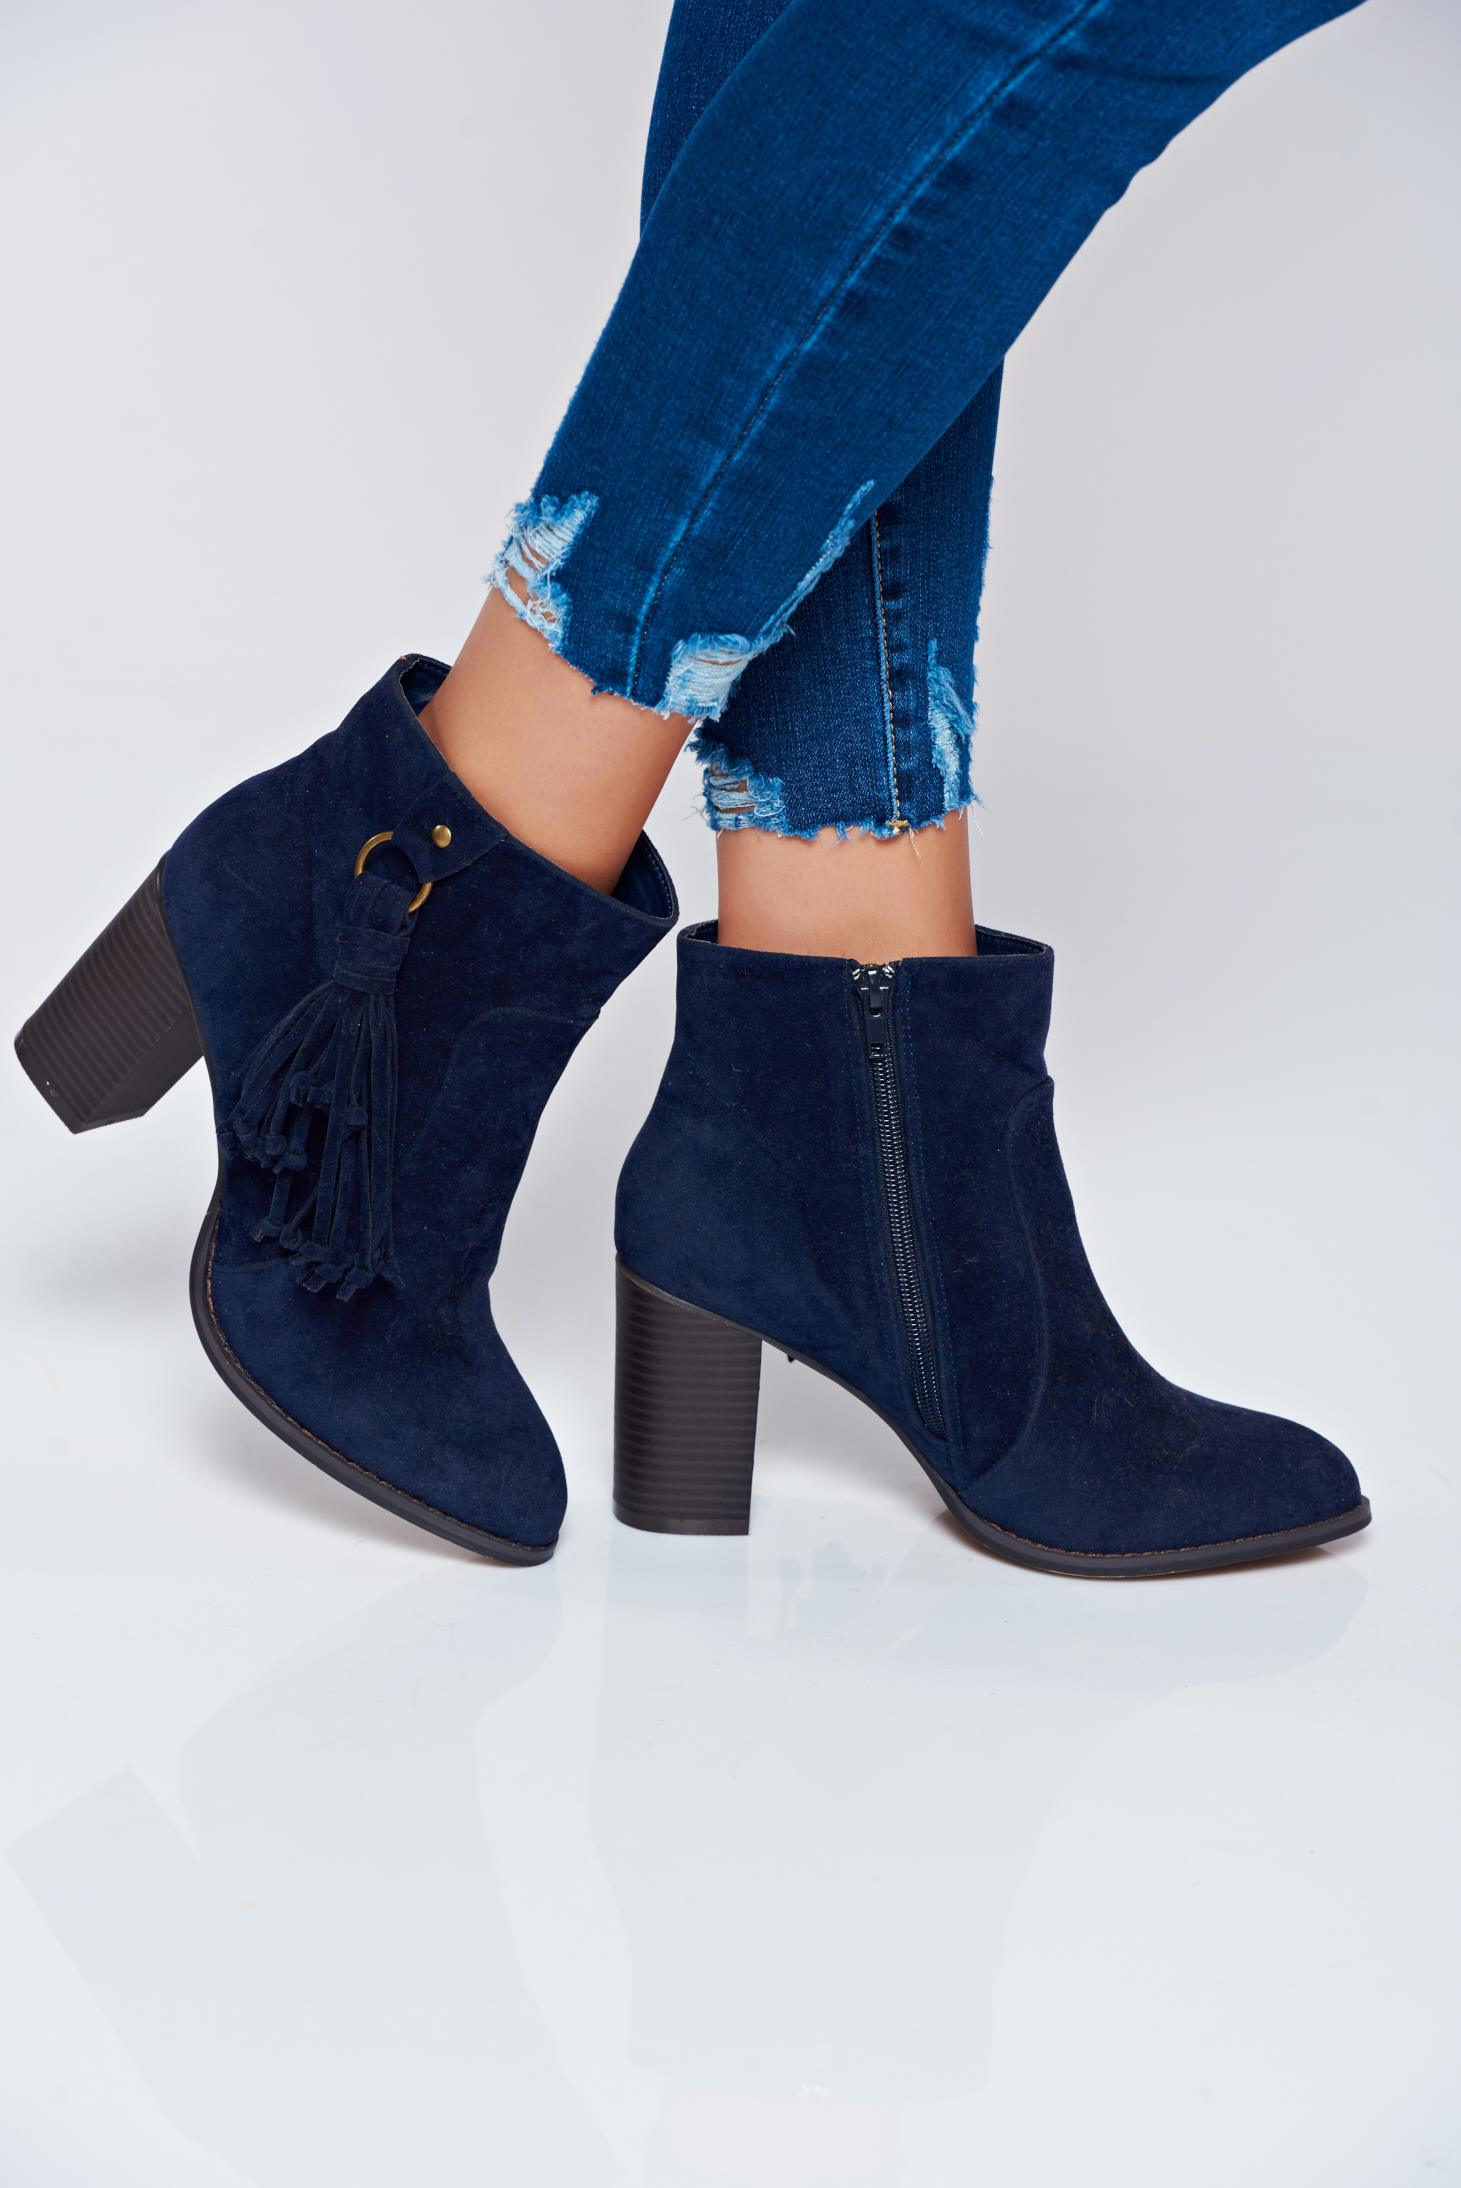 Top Secret darkblue ankle boots with